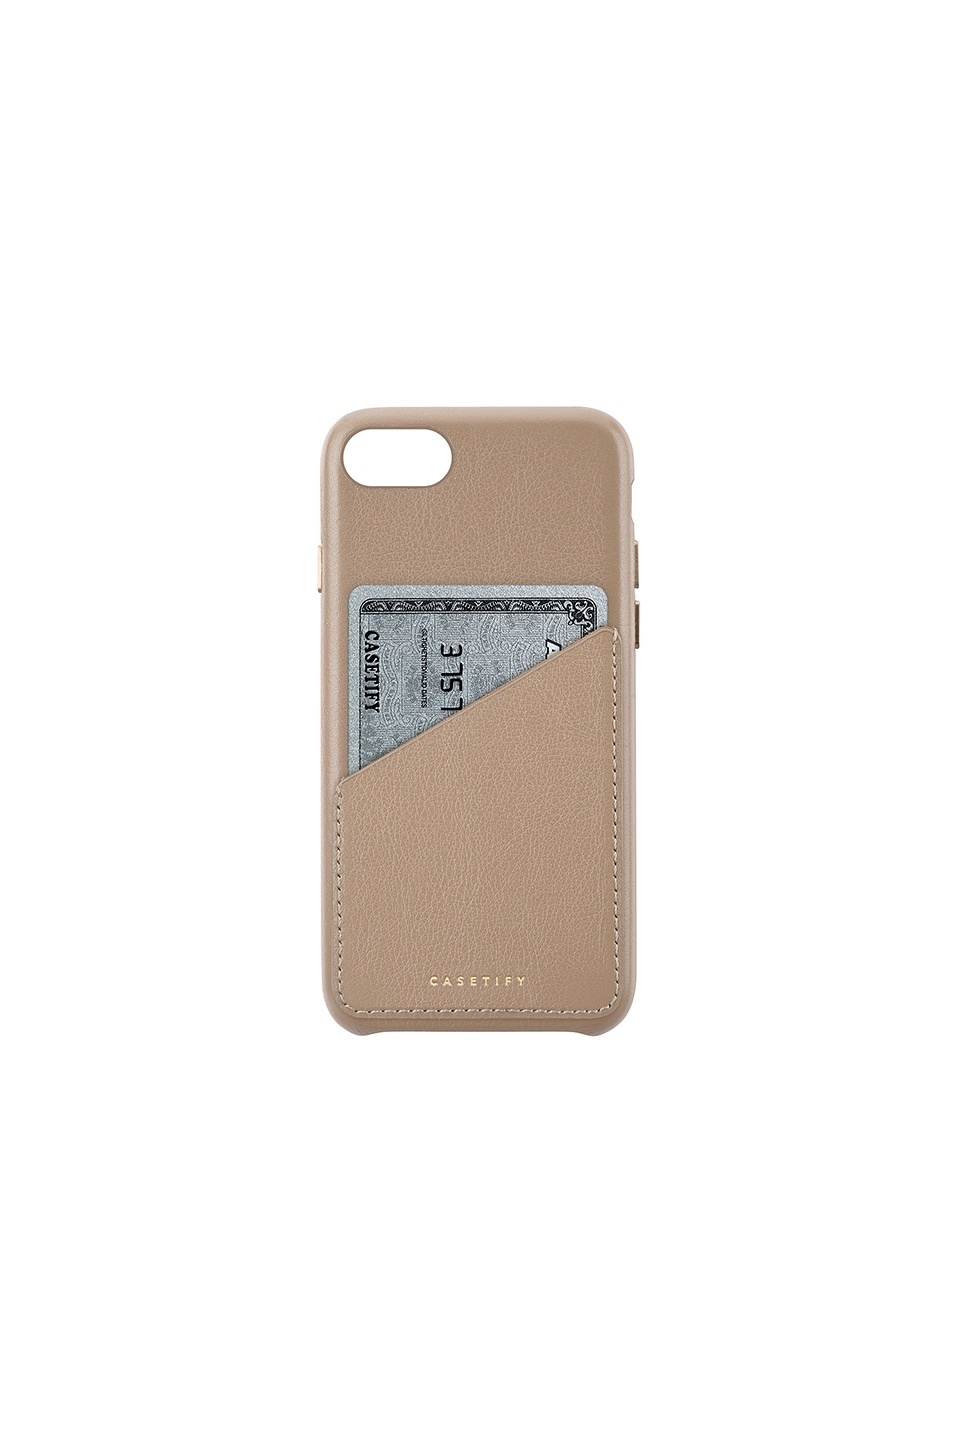 Leather Card Iphone 6/7/8 Case, Brown